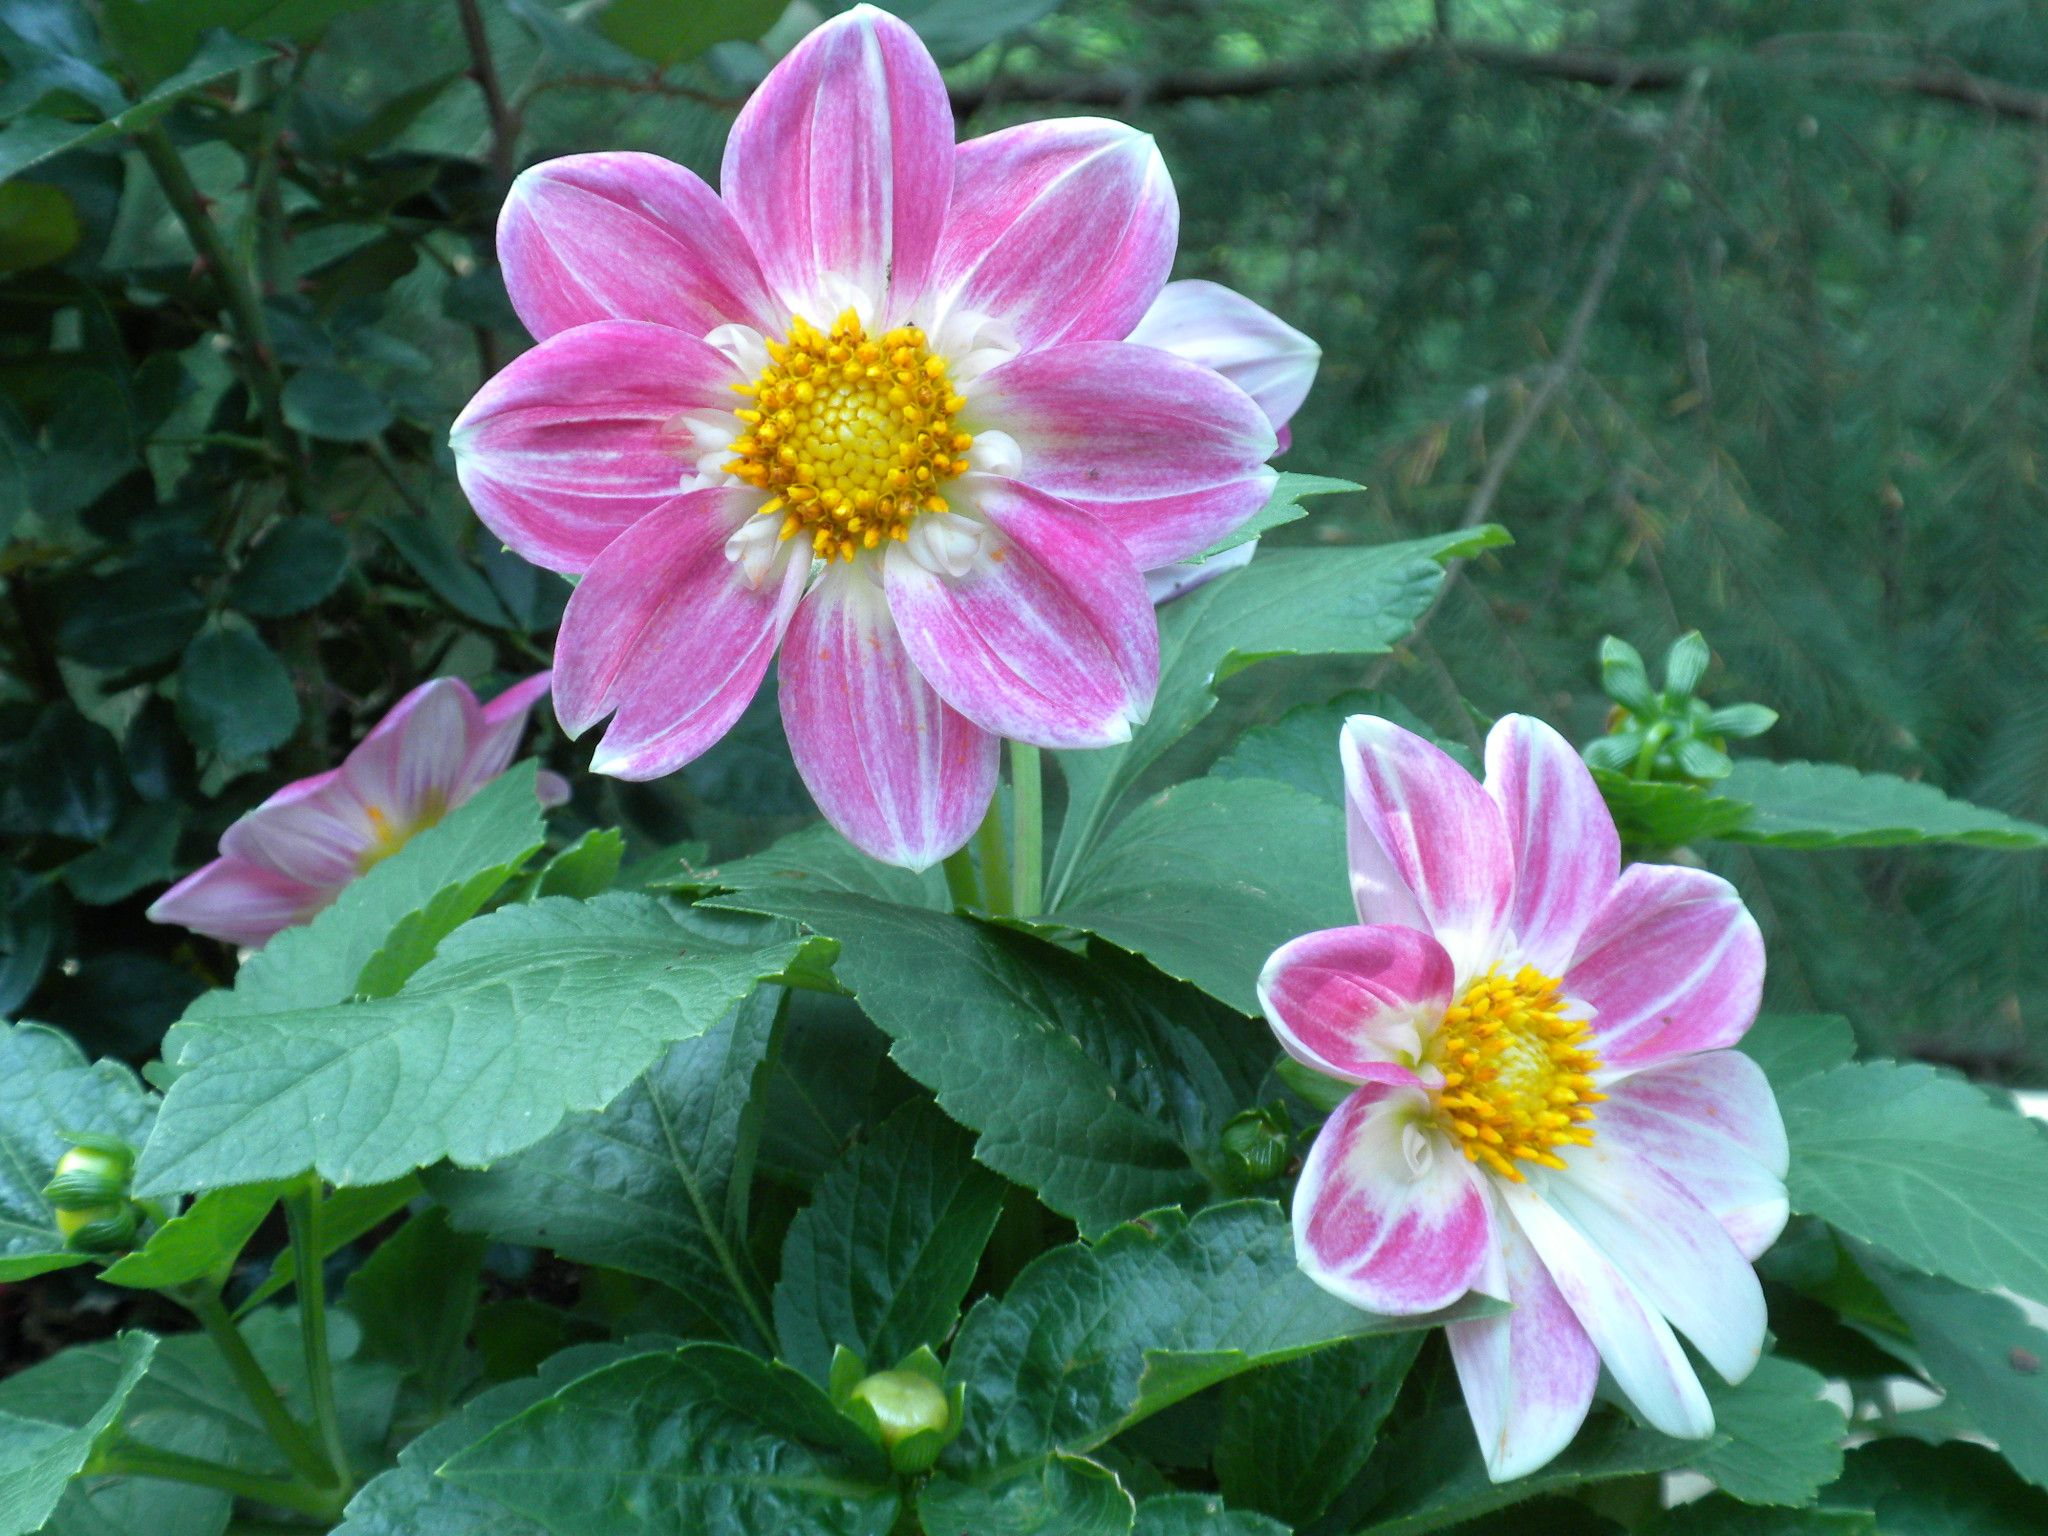 Pink potted flower my photography pinterest flower and photography pink potted flower mightylinksfo